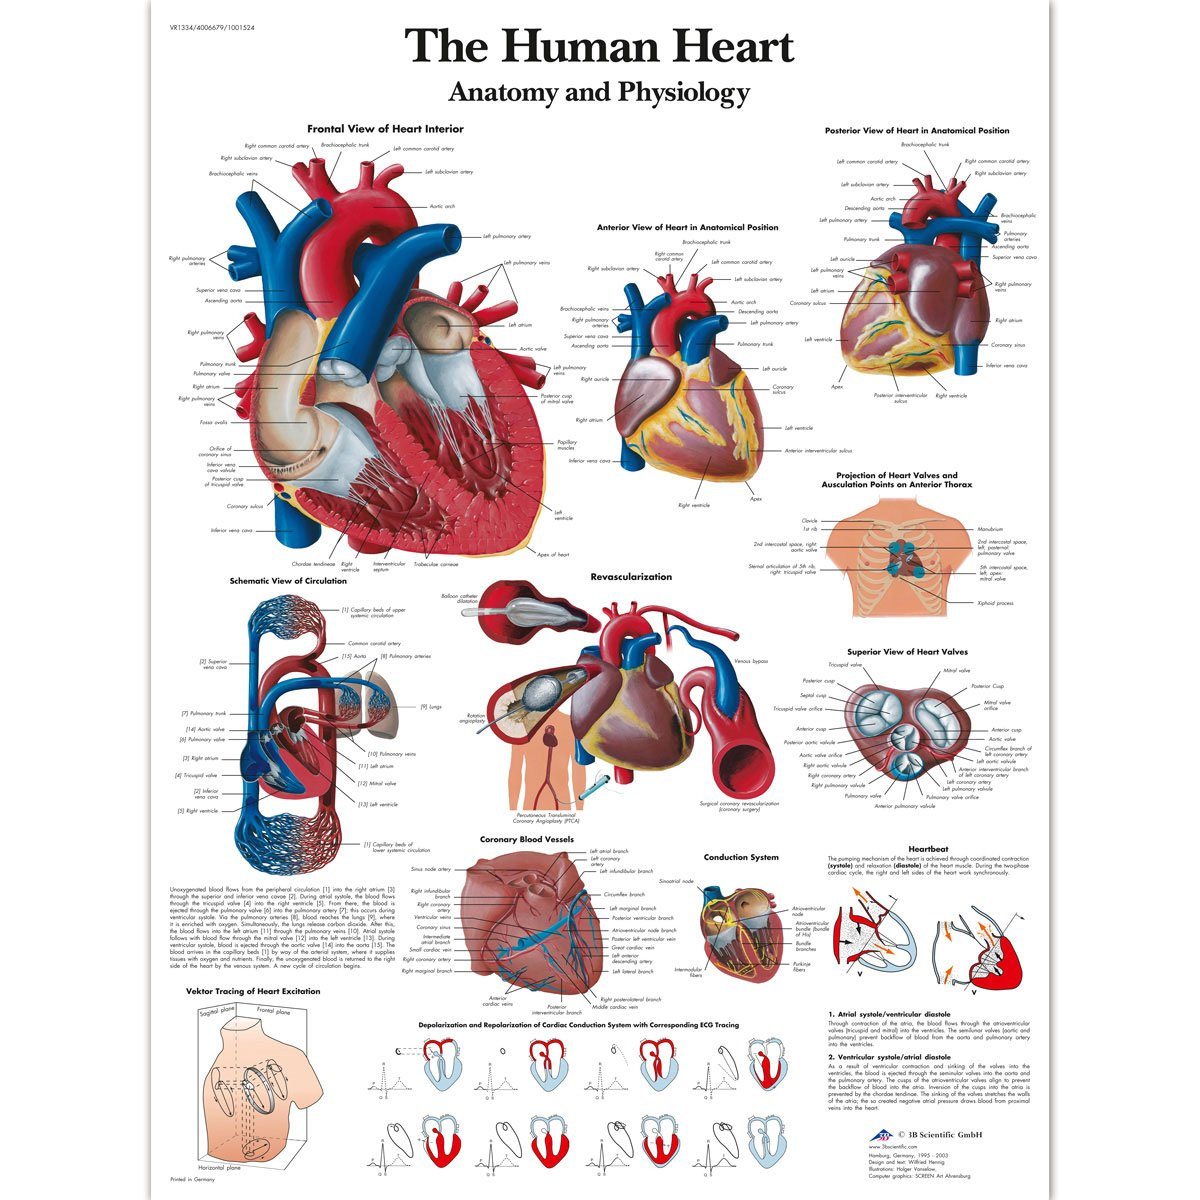 3B Scientific VR1334L Glossy Laminated Paper Human Heart Anatomy and Physiology Chart, Poster Size 20-Inch Widthx26-Inch Height 1001524